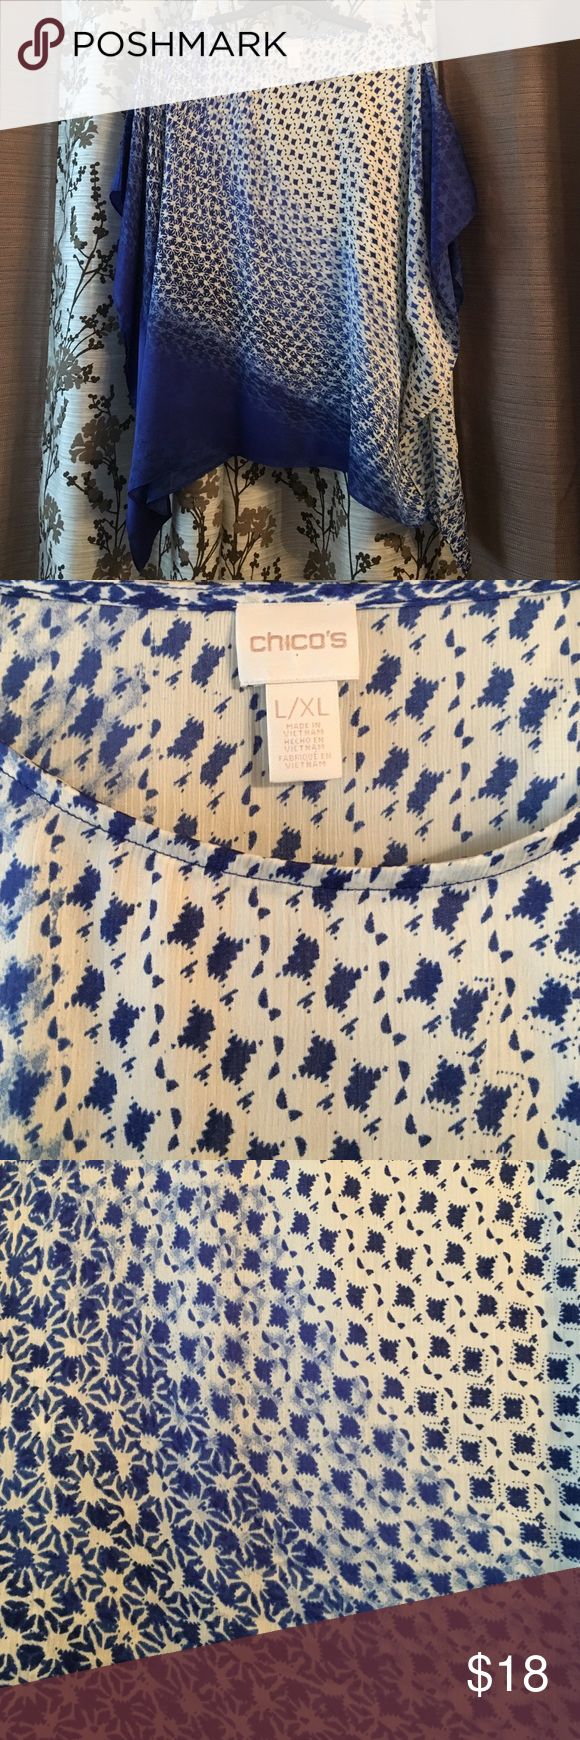 Chicos ombré batwing top Blue and white Chinos brand batwing style flows top. Very flattering and cool for hot summer days. Chico's Tops Tunics